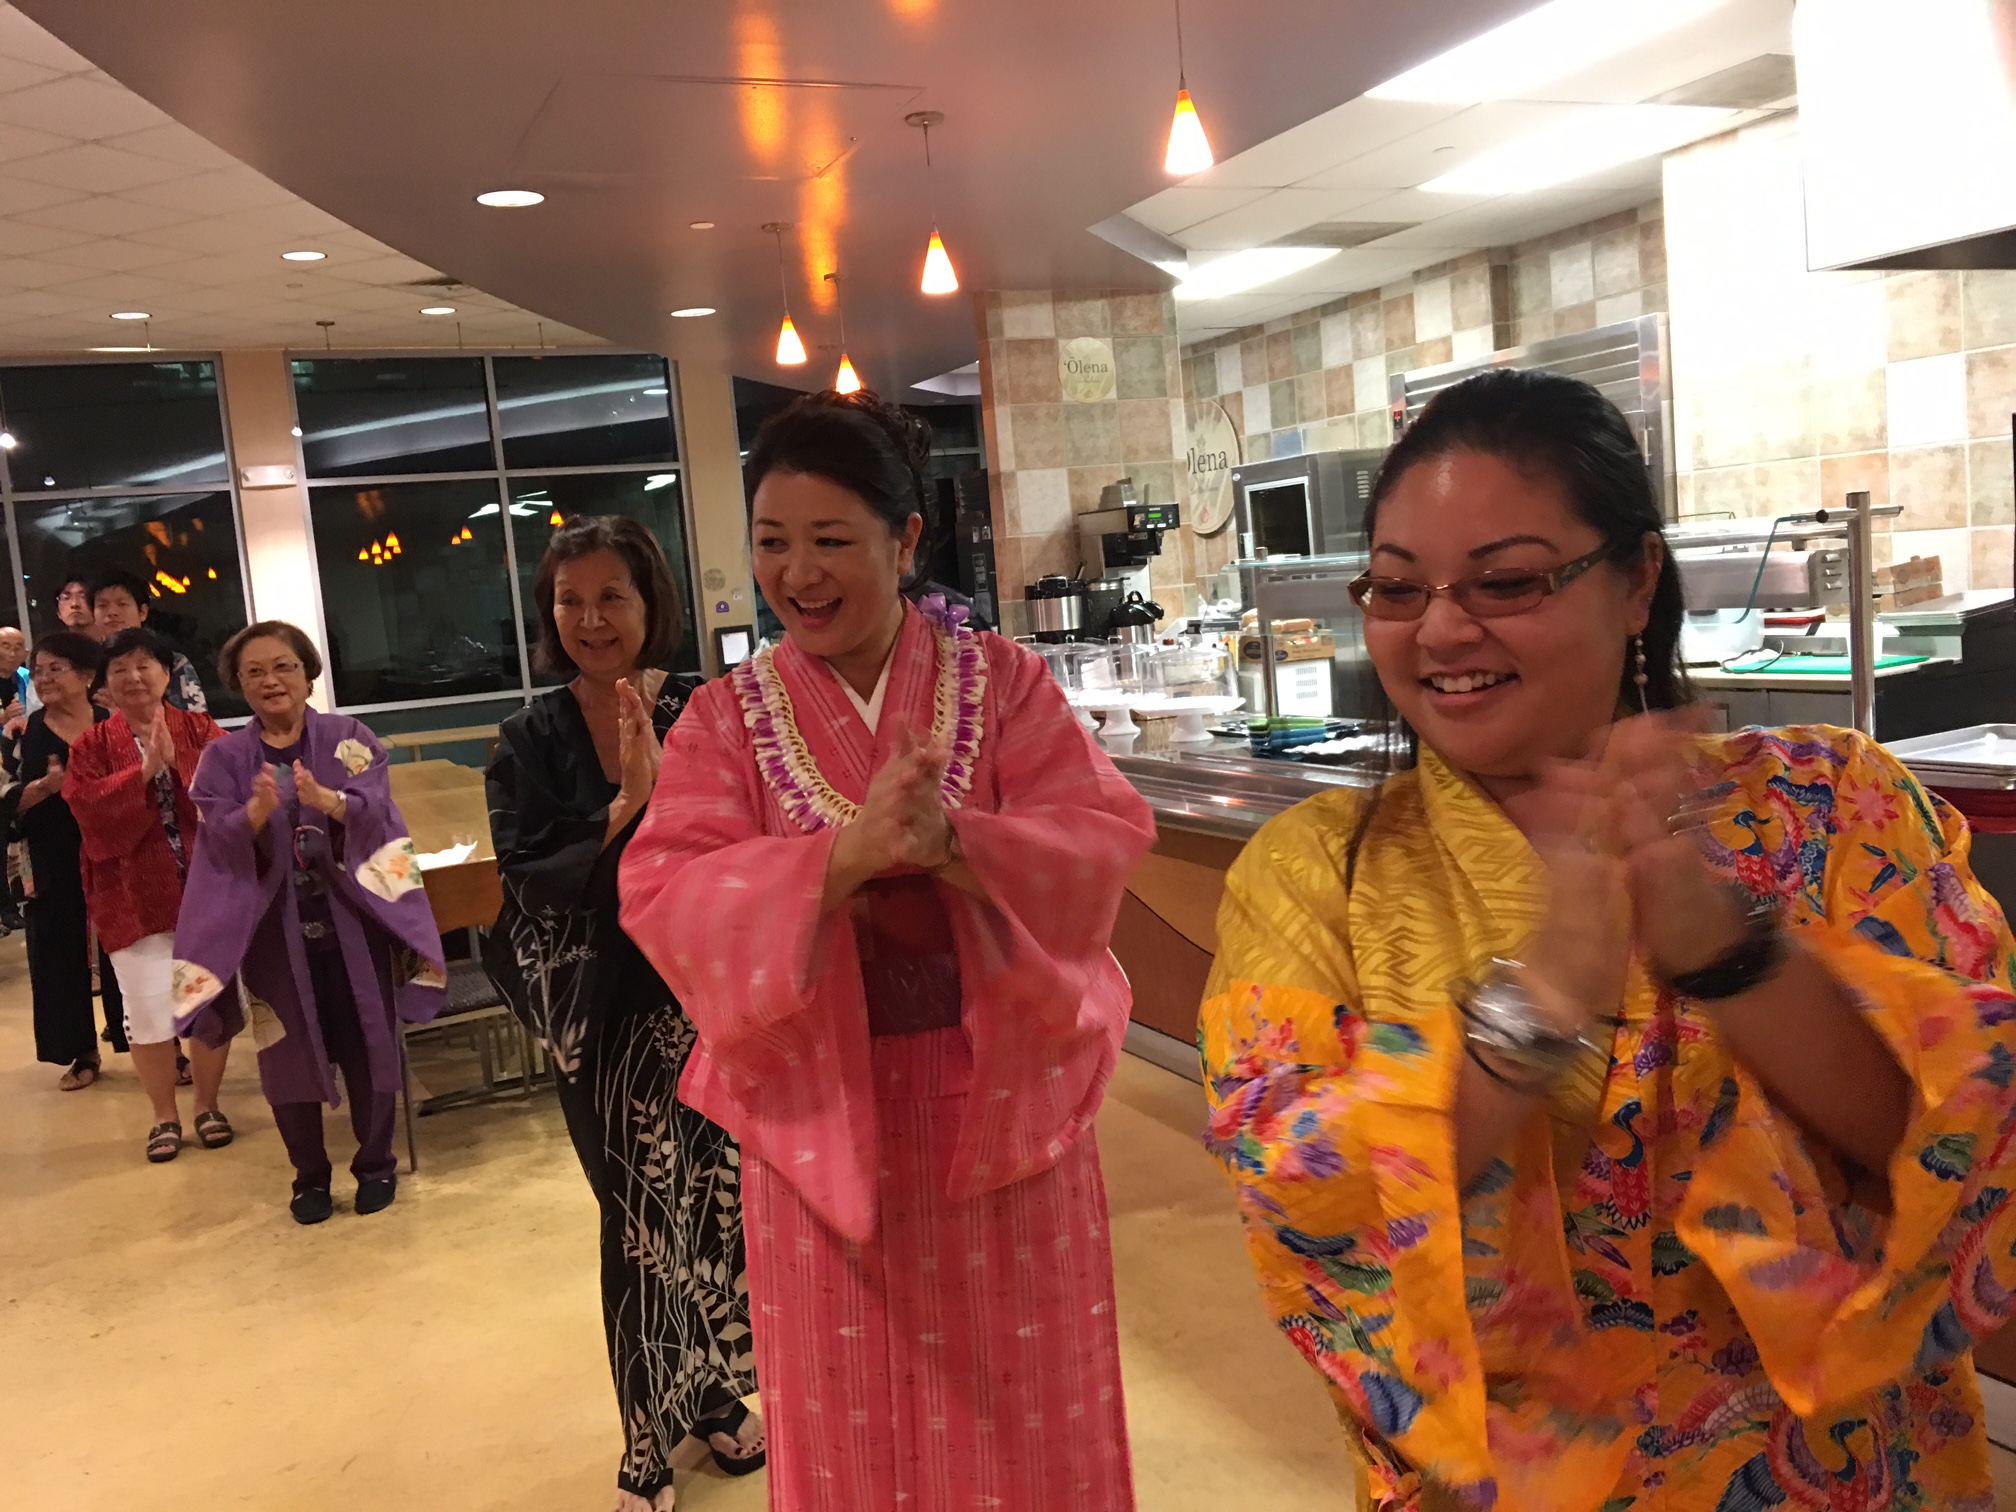 Guests joined in a bon dance led by members of the Iwakuni Odori Aiko Kai.